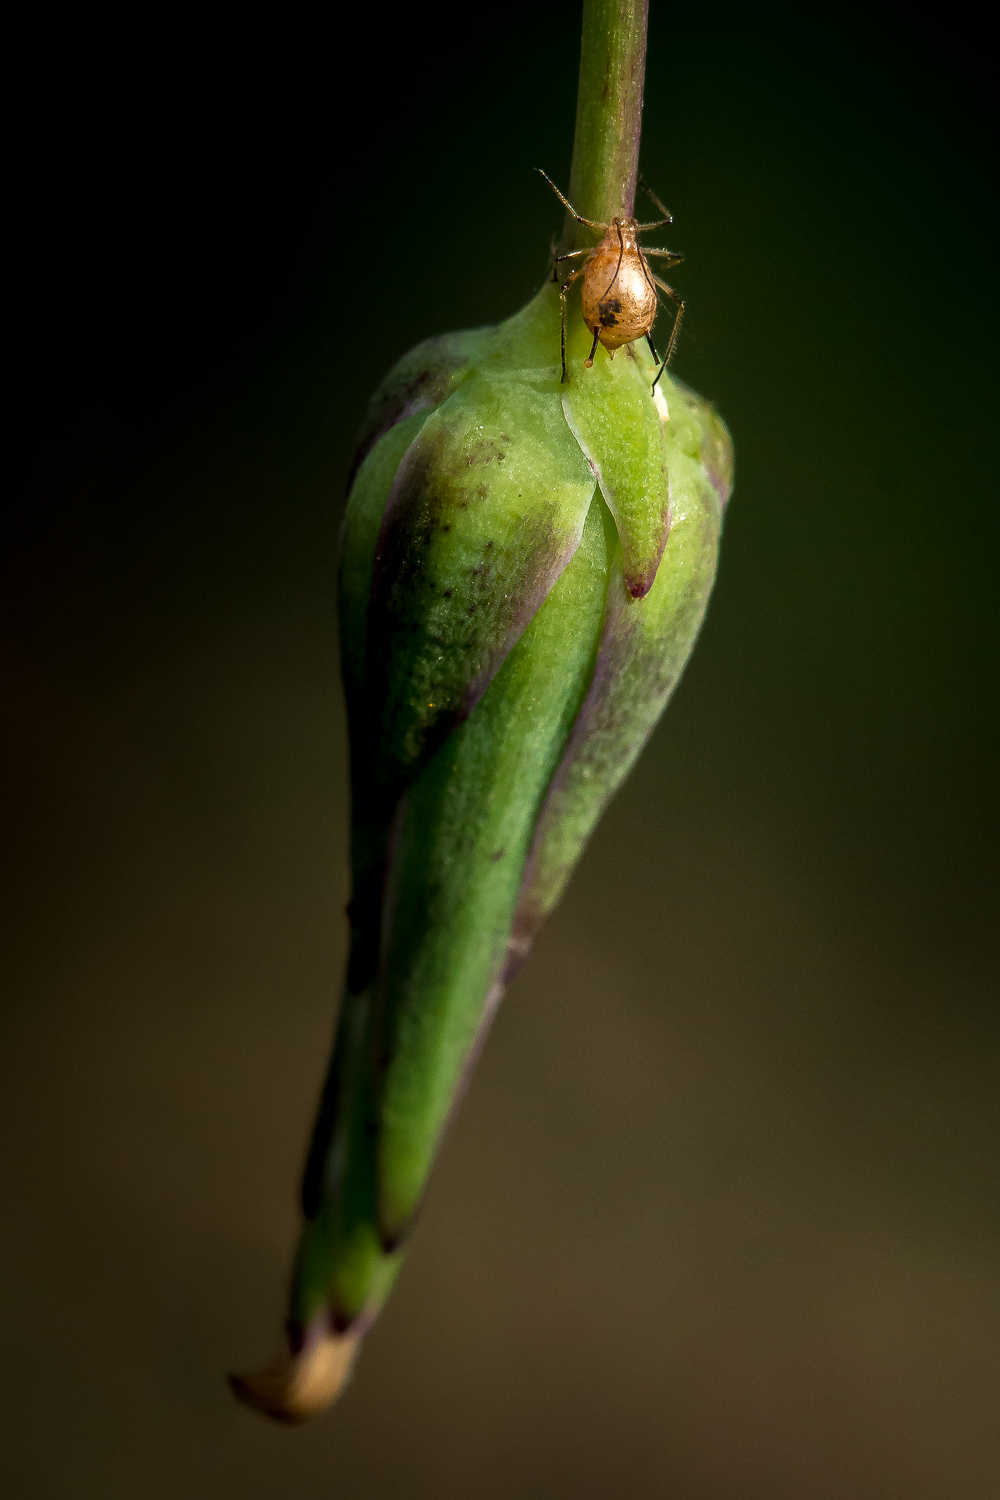 Aphid on Wildflower Bud